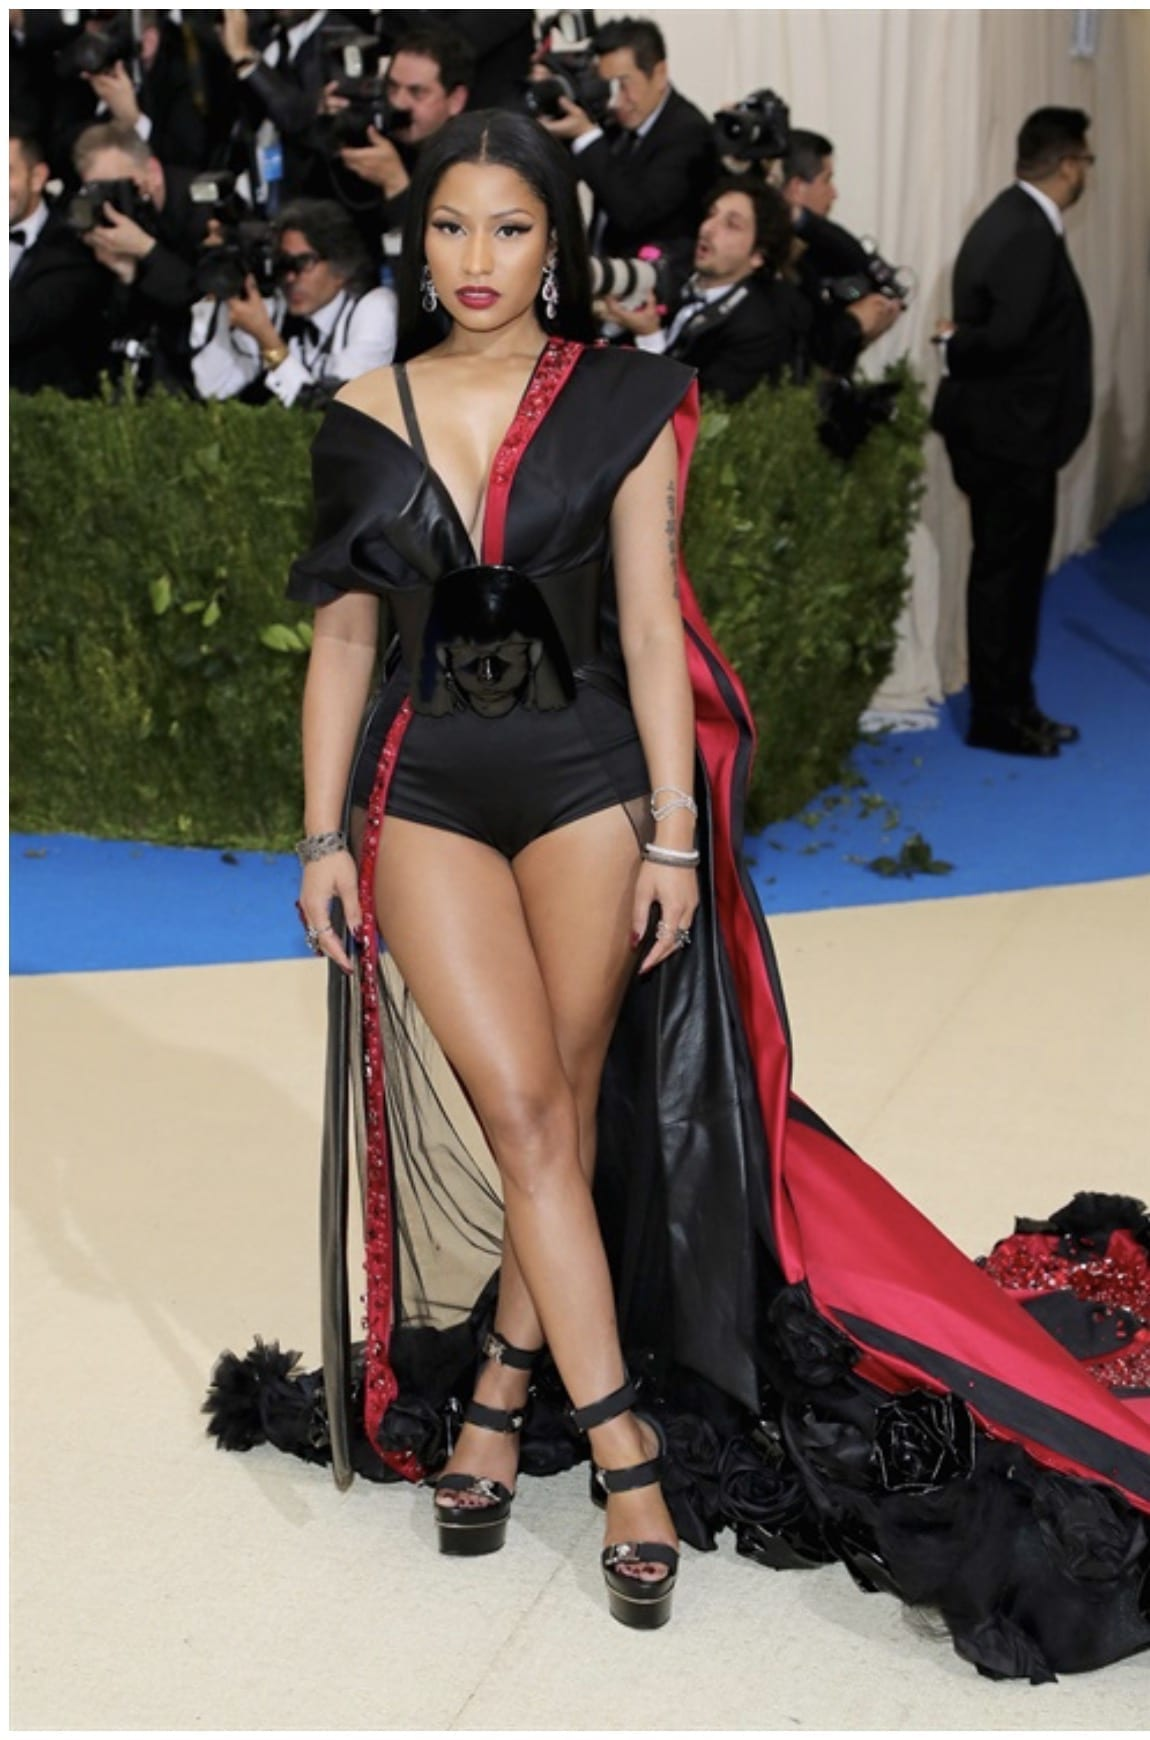 Met Gala 2017, bella hadid met gala 2017, theladycracy.it, elisa bellino, fashion blog, fashion blog 2017, fashion blogger 2017, look da red carpet, come si vestono le star sui red carpet, rihanna met gala 2017